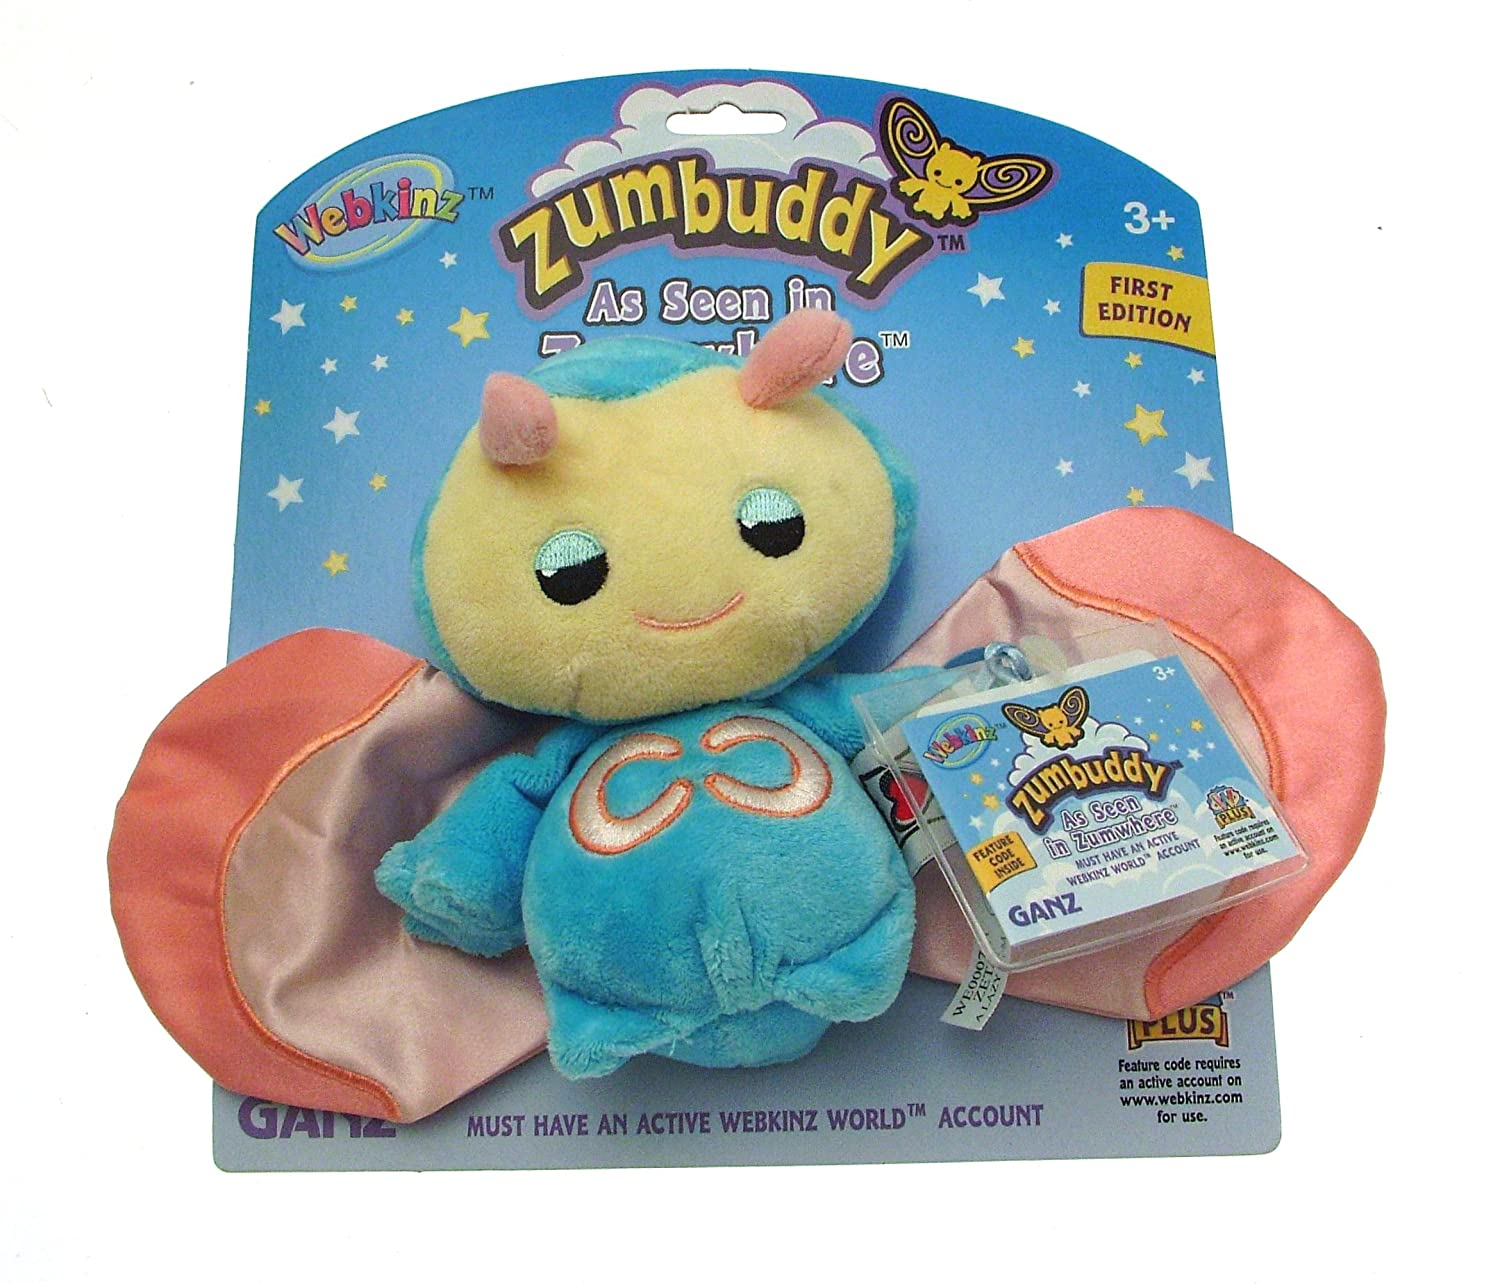 Webkinz Zumbuddy Zeta the Blue Lazy Zum First Edition